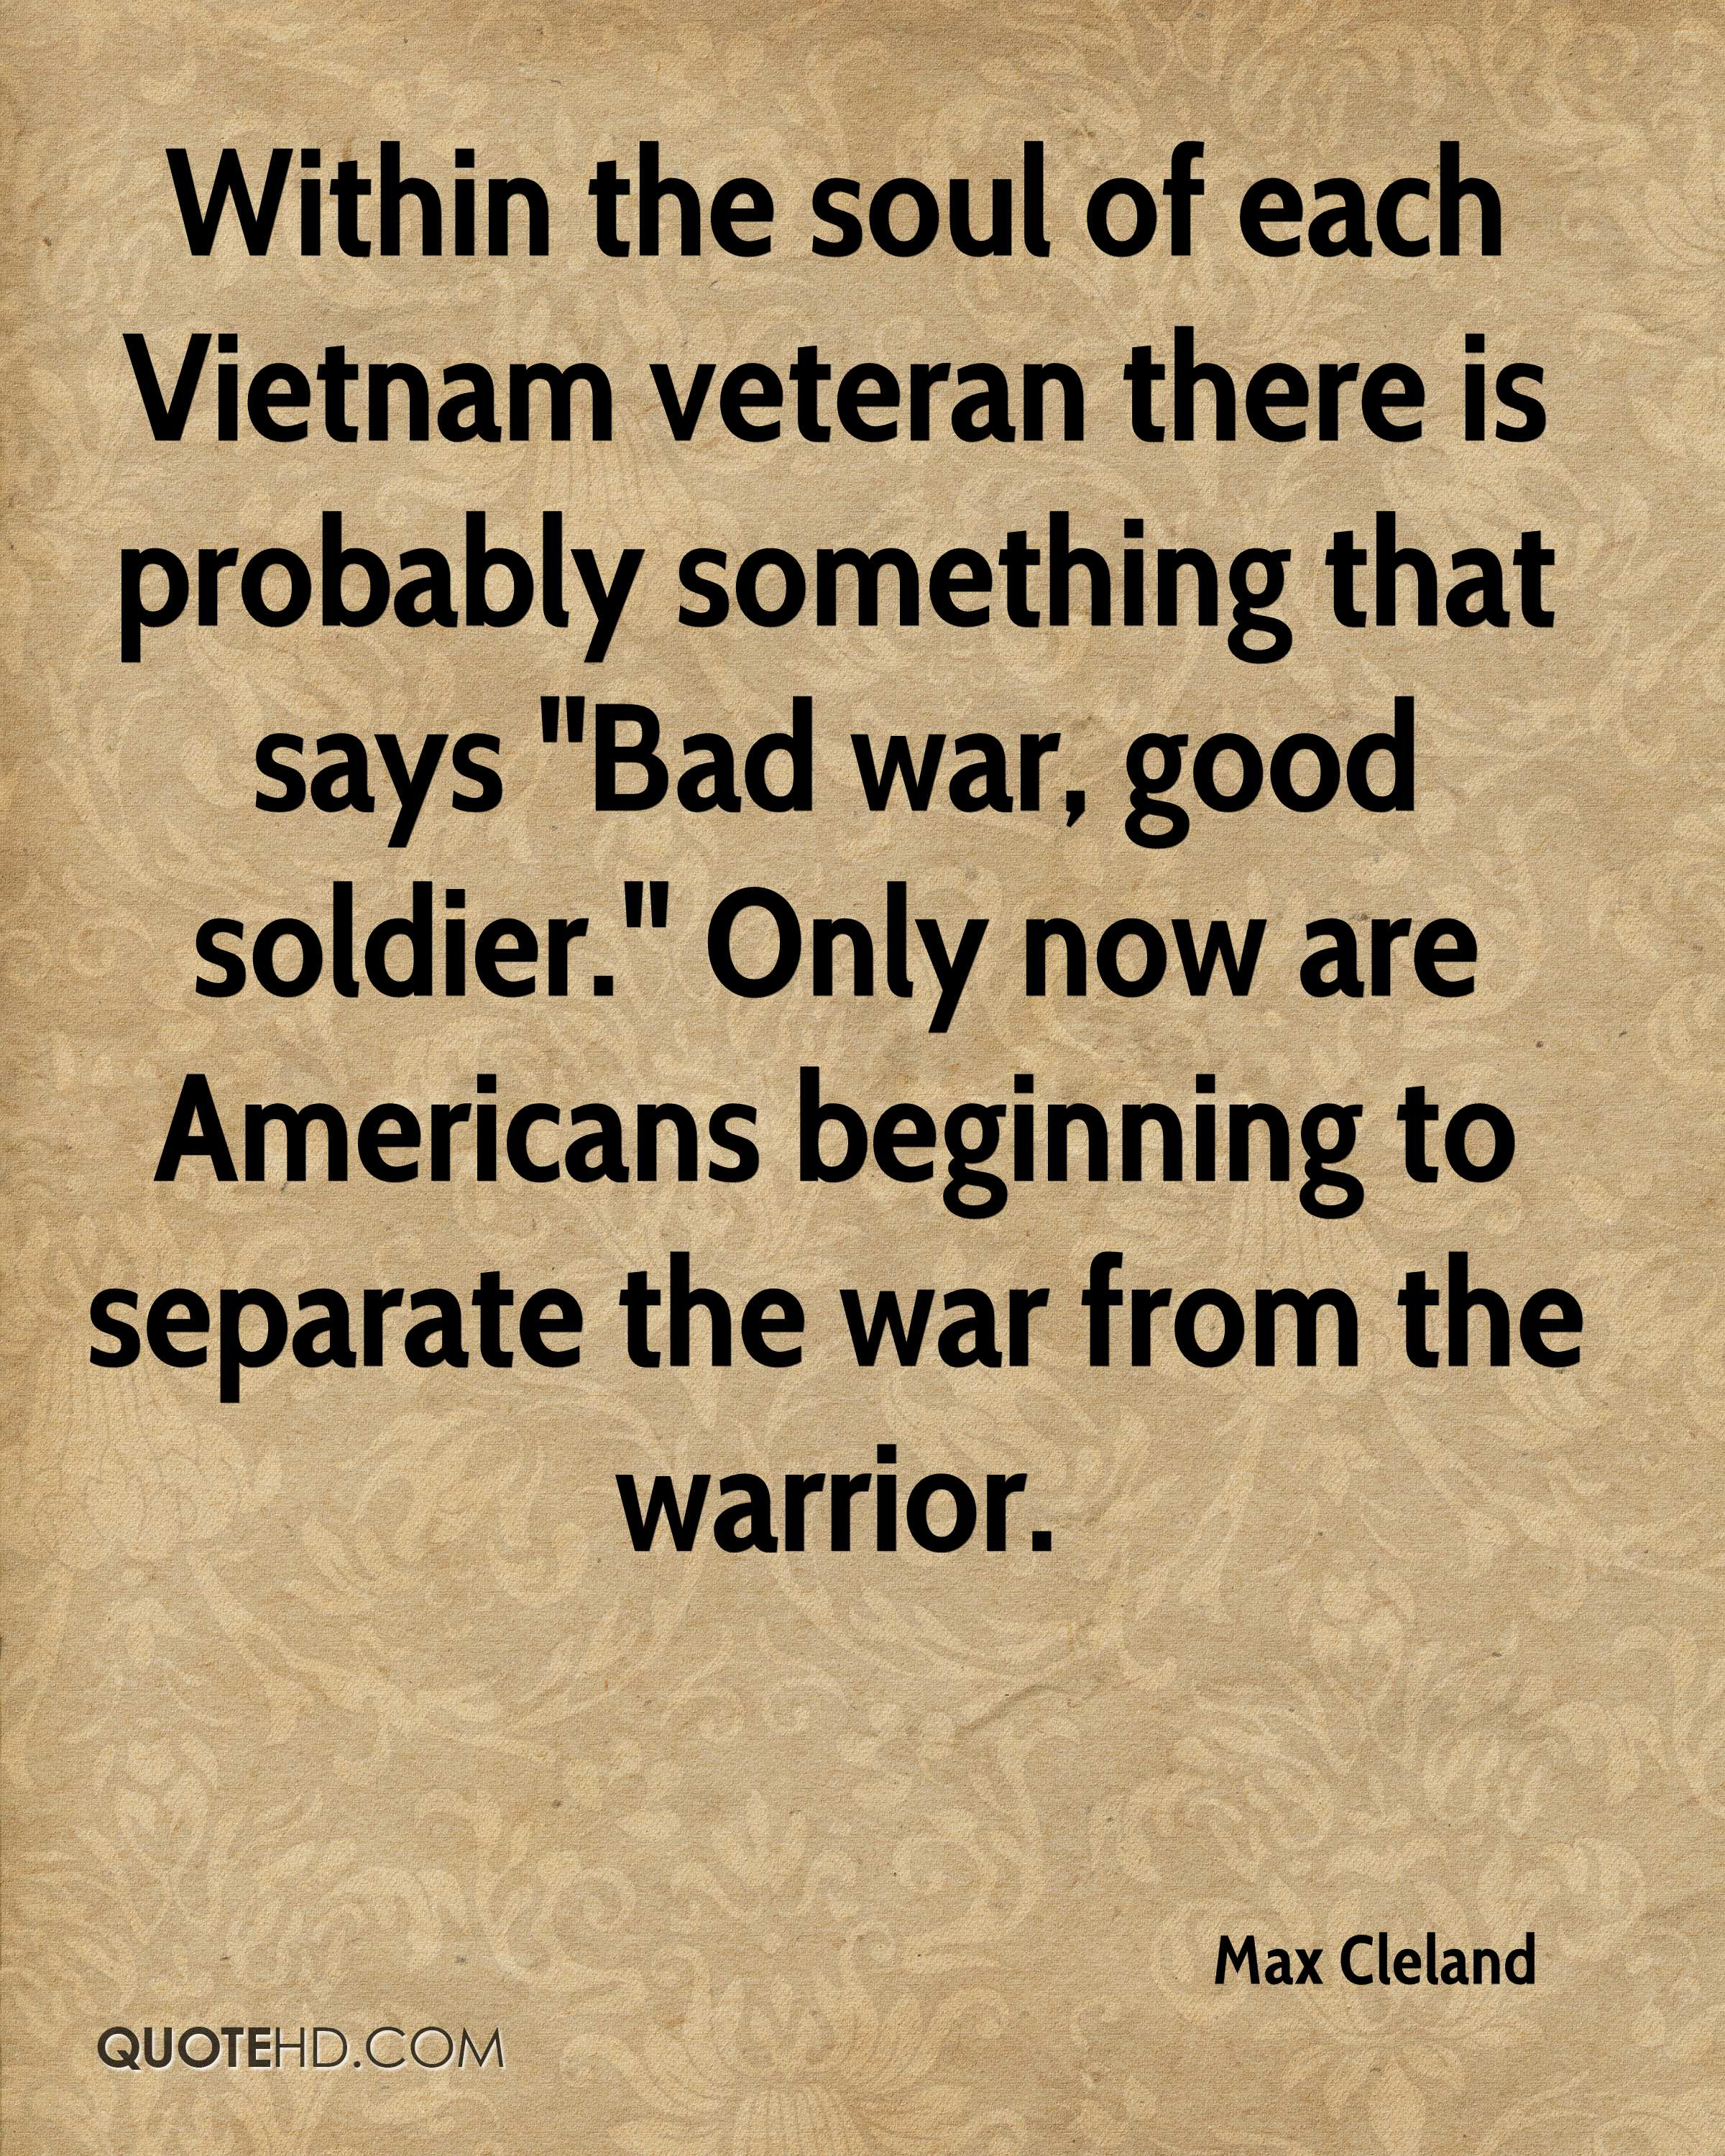 """Within the soul of each Vietnam veteran there is probably something that says """"Bad war, good soldier."""" Only now are Americans beginning to separate the war from the warrior."""